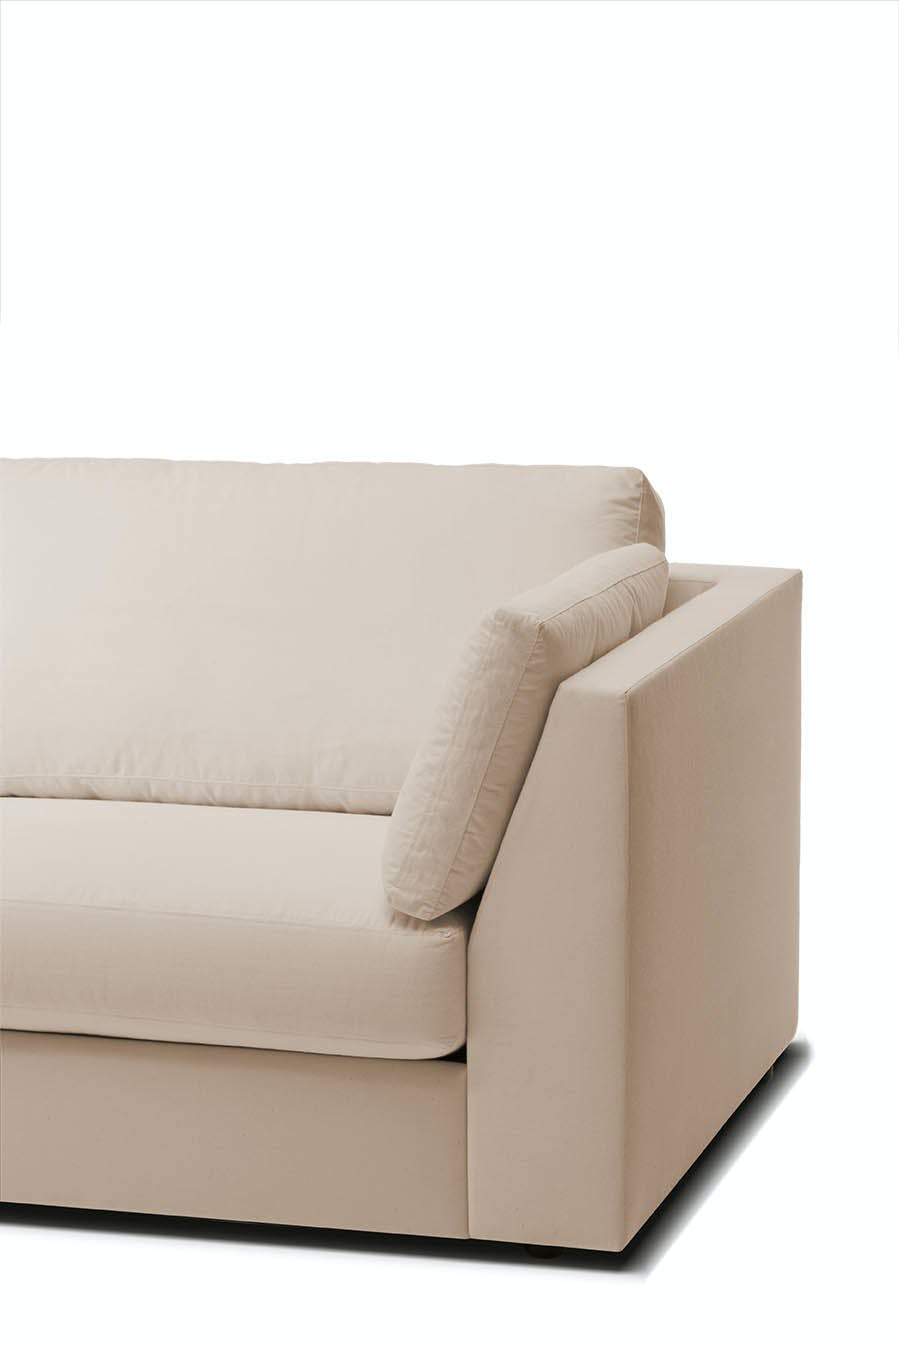 Jab Anstoetz Inspiration Modular Sofa Slope Arm Detail Haute Living